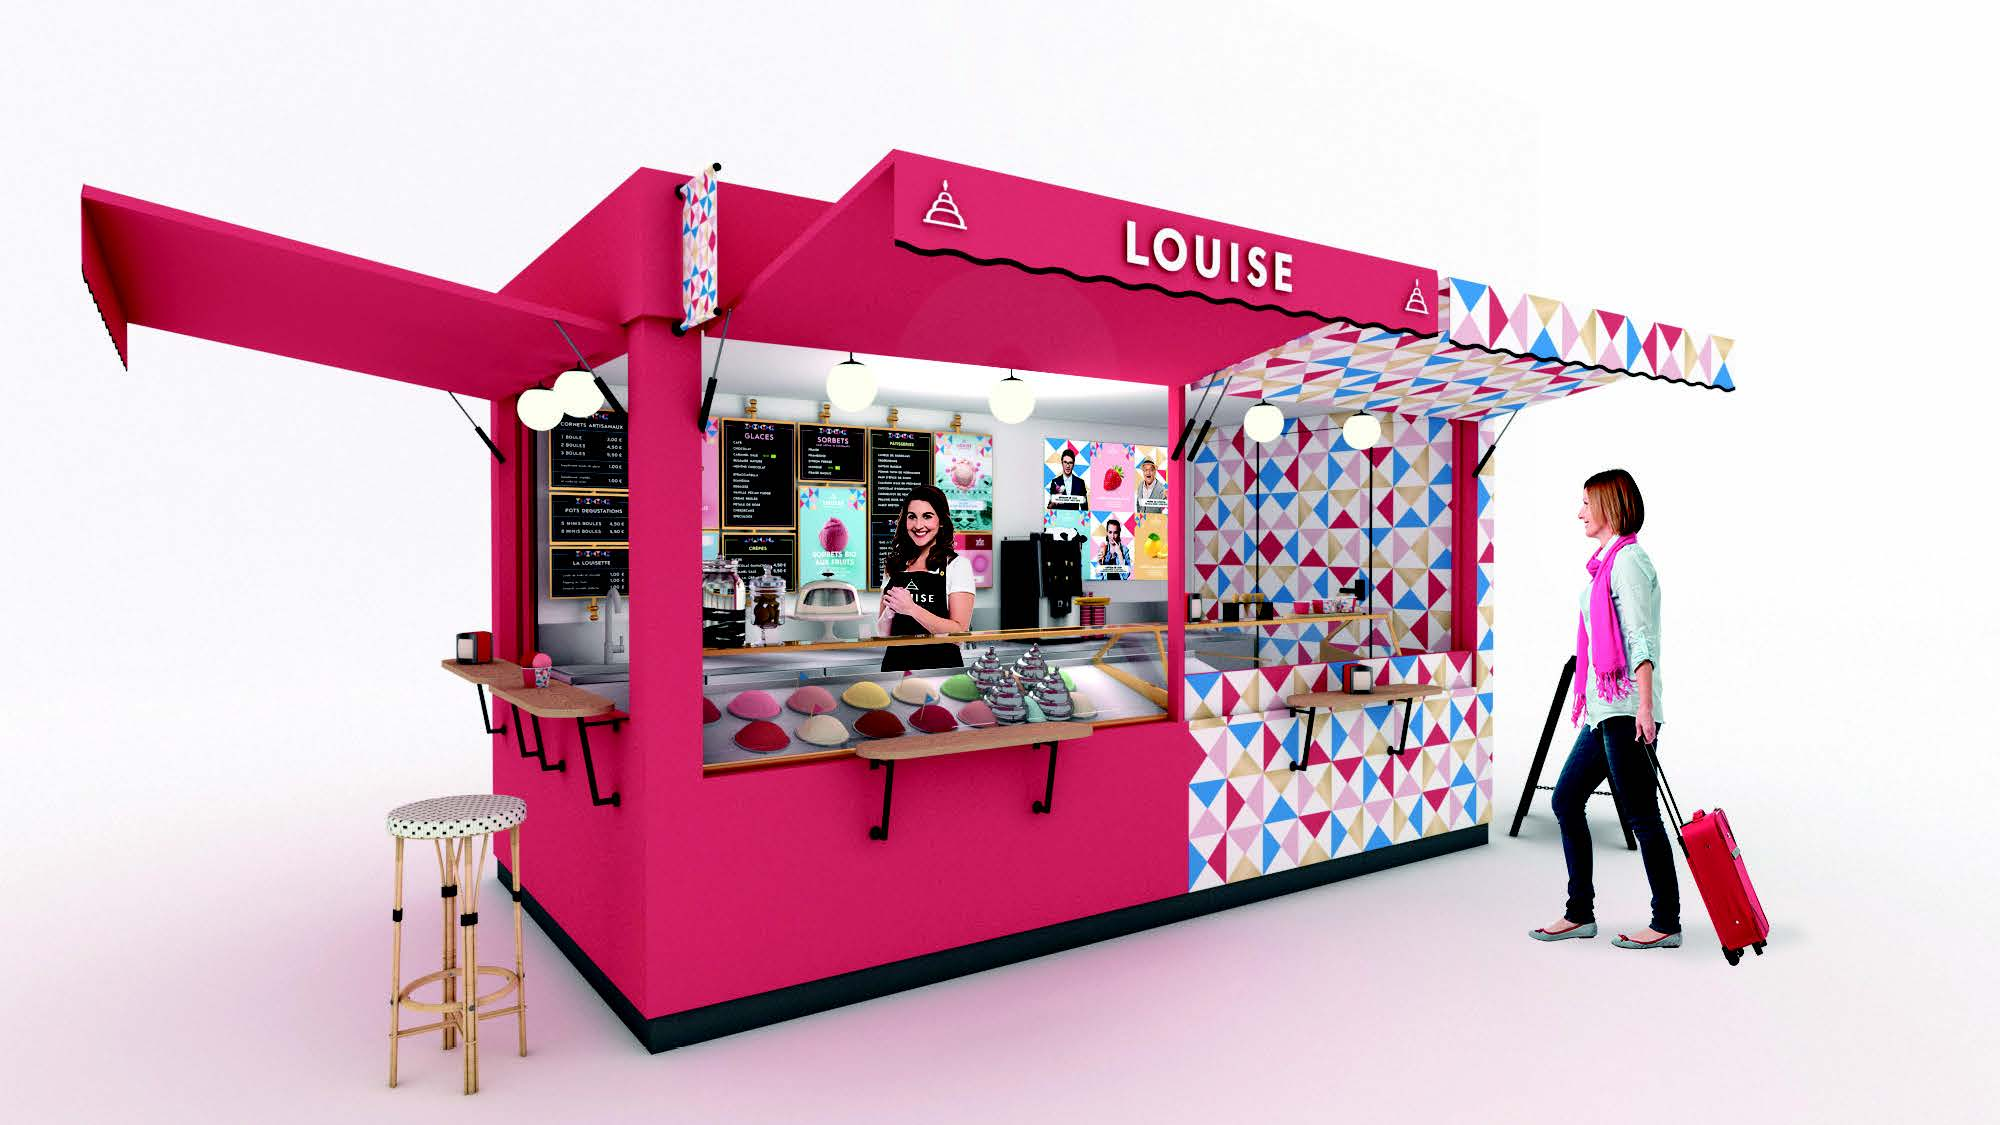 Kiosque glacier de la franchise Louise